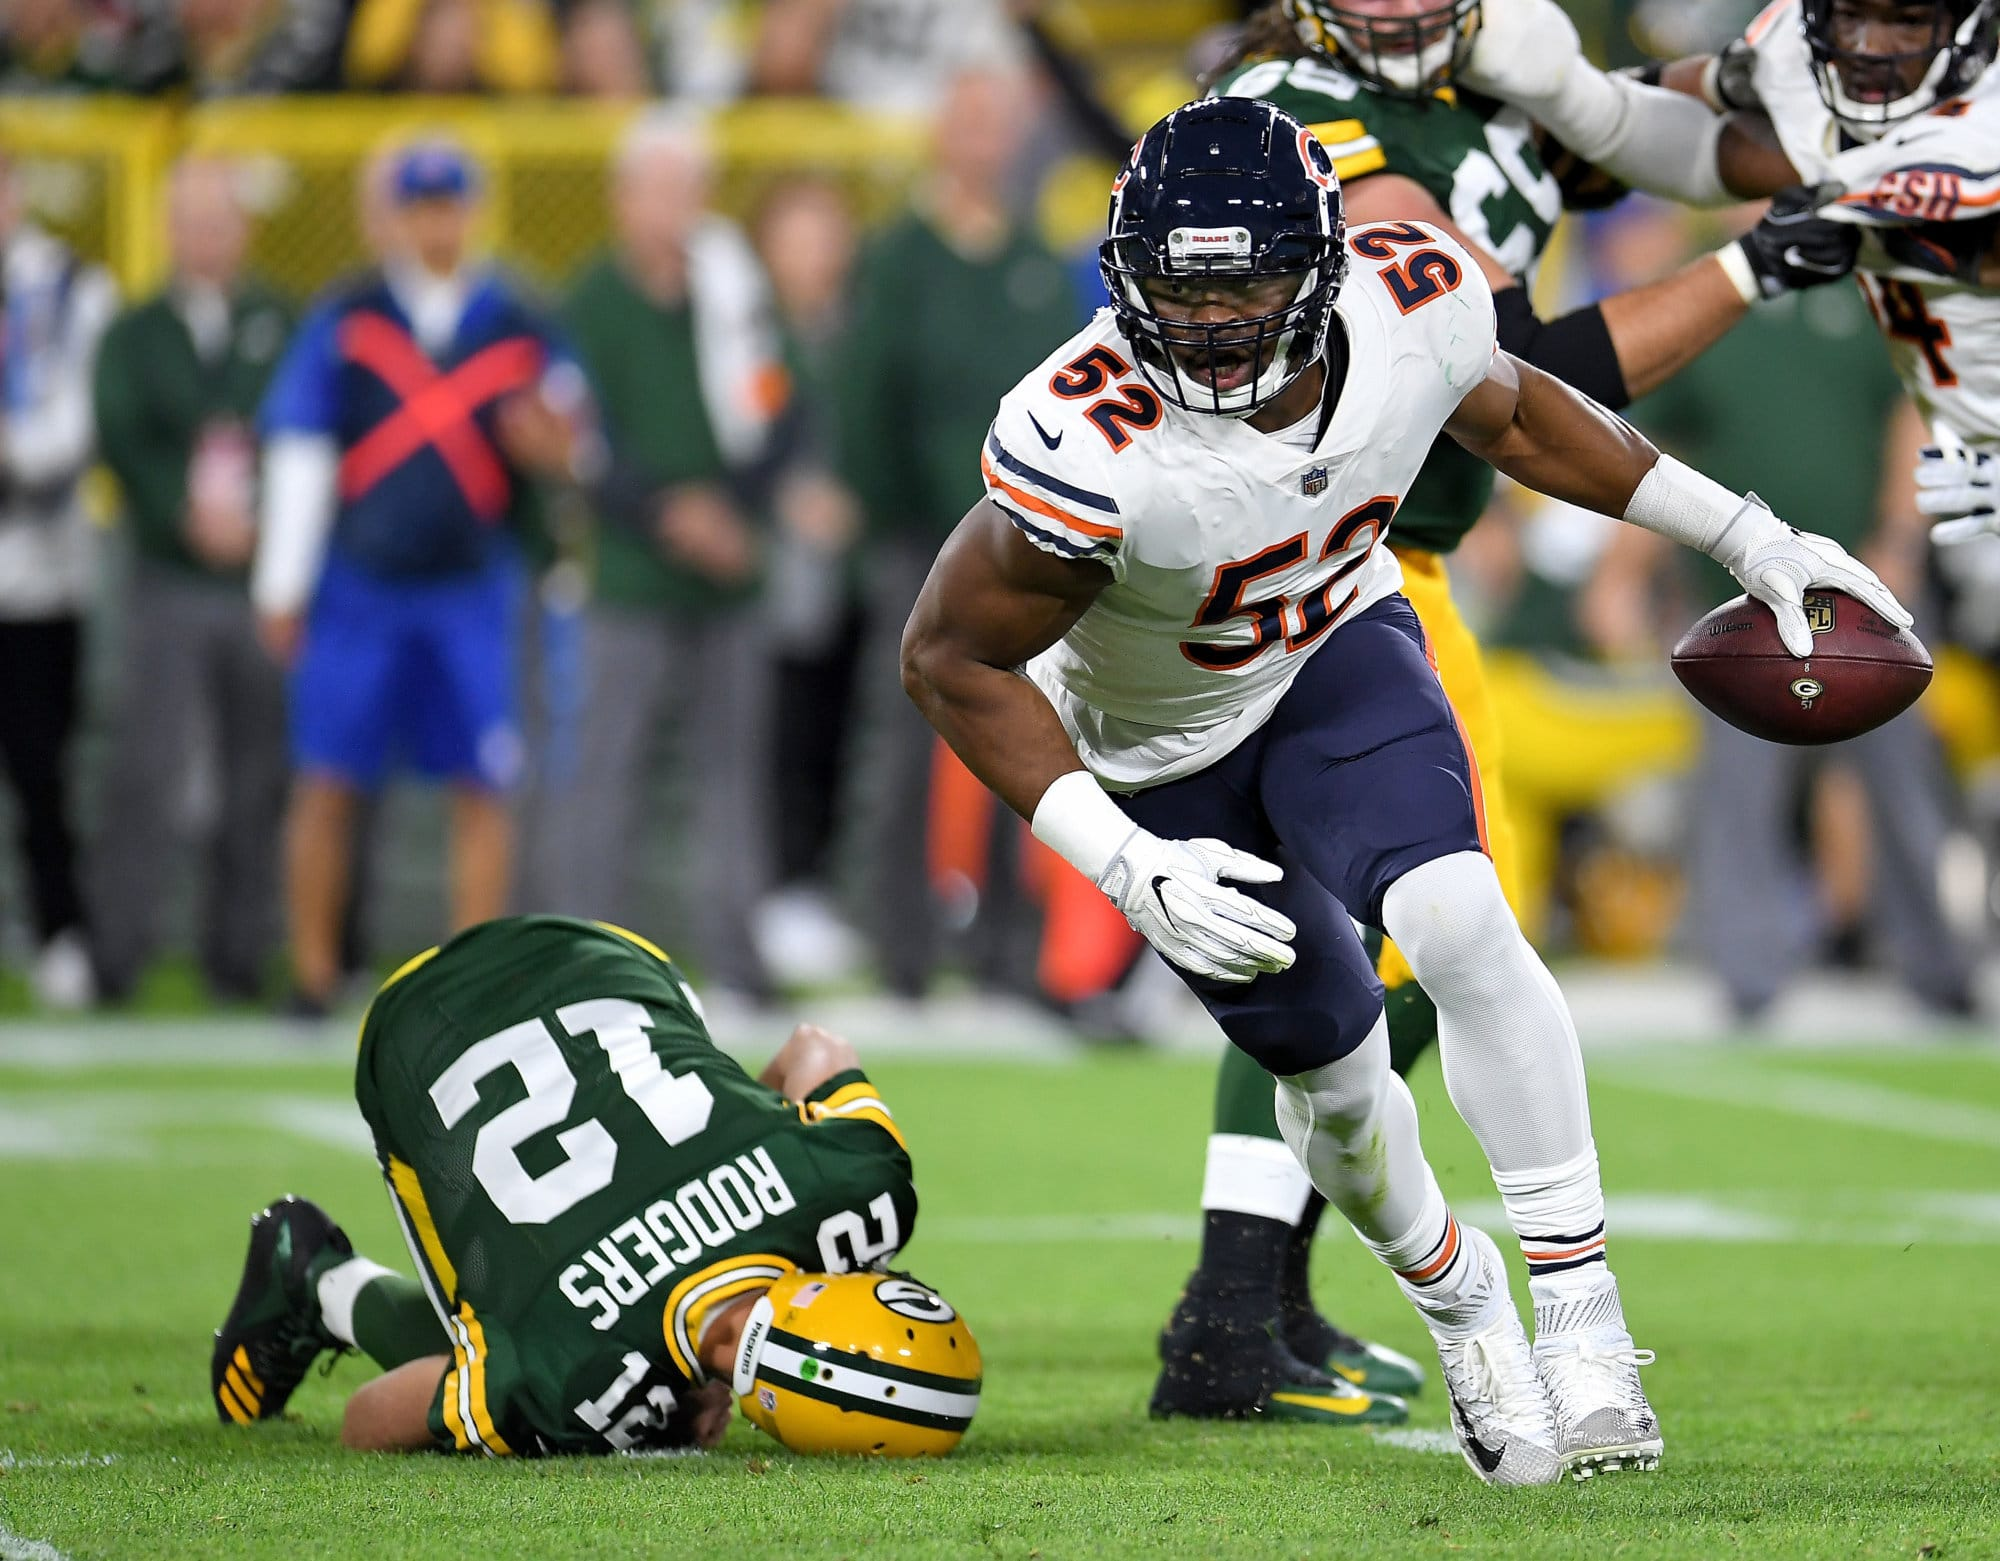 GREEN BAY, WI - SEPTEMBER 09:  Khalil Mack #52 of the Chicago Bears reacts after sacking Aaron Rodgers #12 during the second quarter of a game at Lambeau Field on September 9, 2018 in Green Bay, Wisconsin.  (Photo by Stacy Revere/Getty Images)